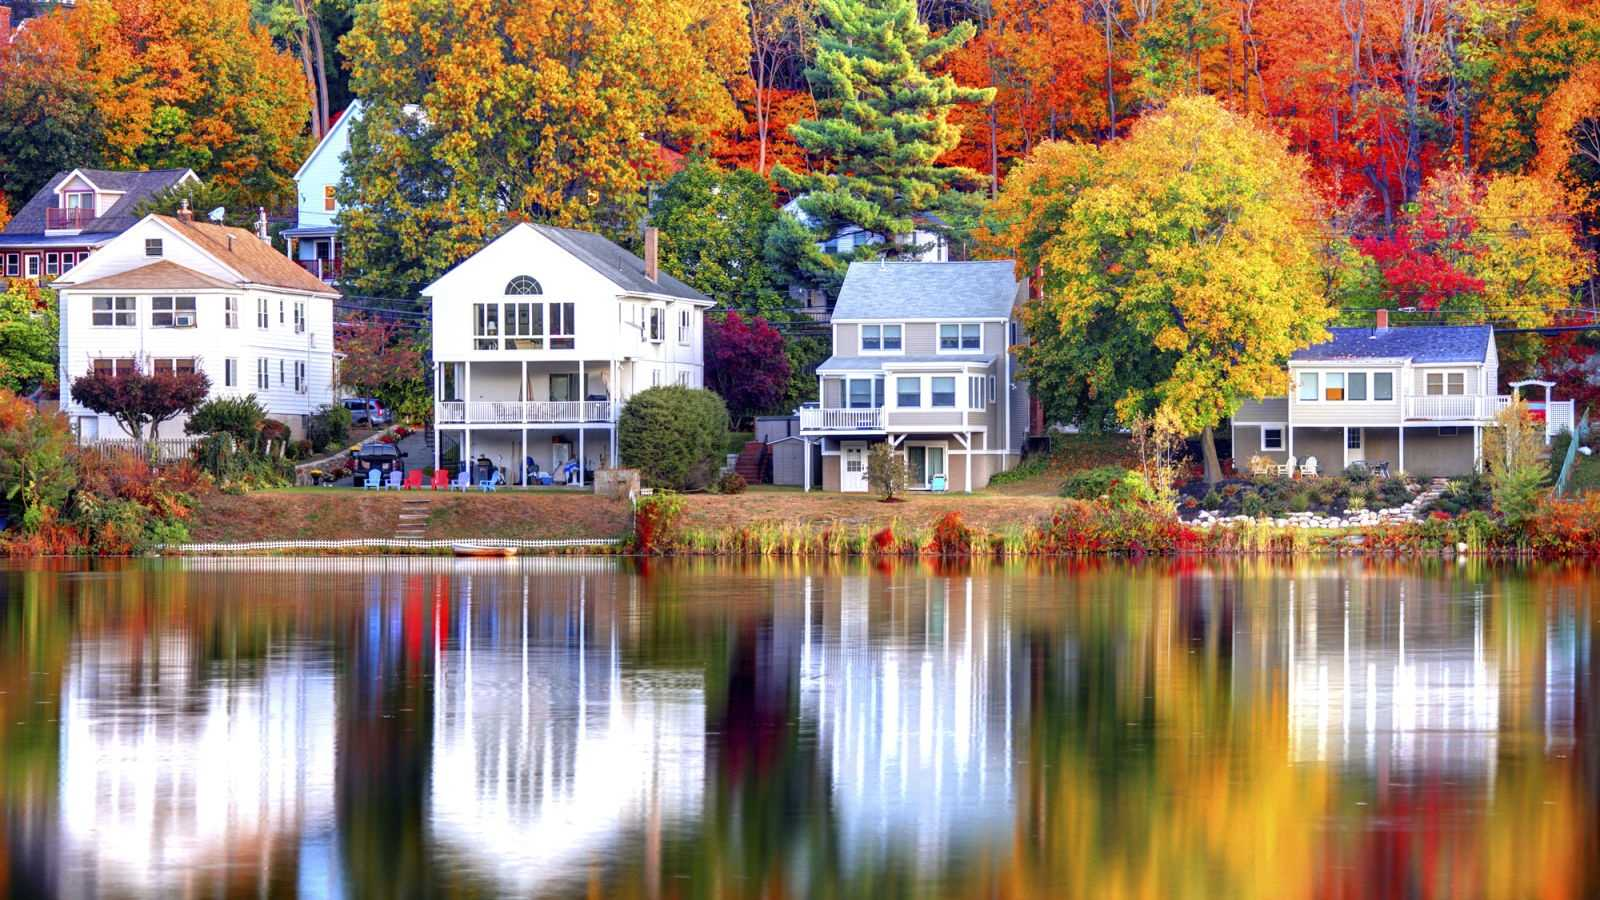 MassachussettsThe colorful foliage is proof that there's no season more stunning than fall in New England.